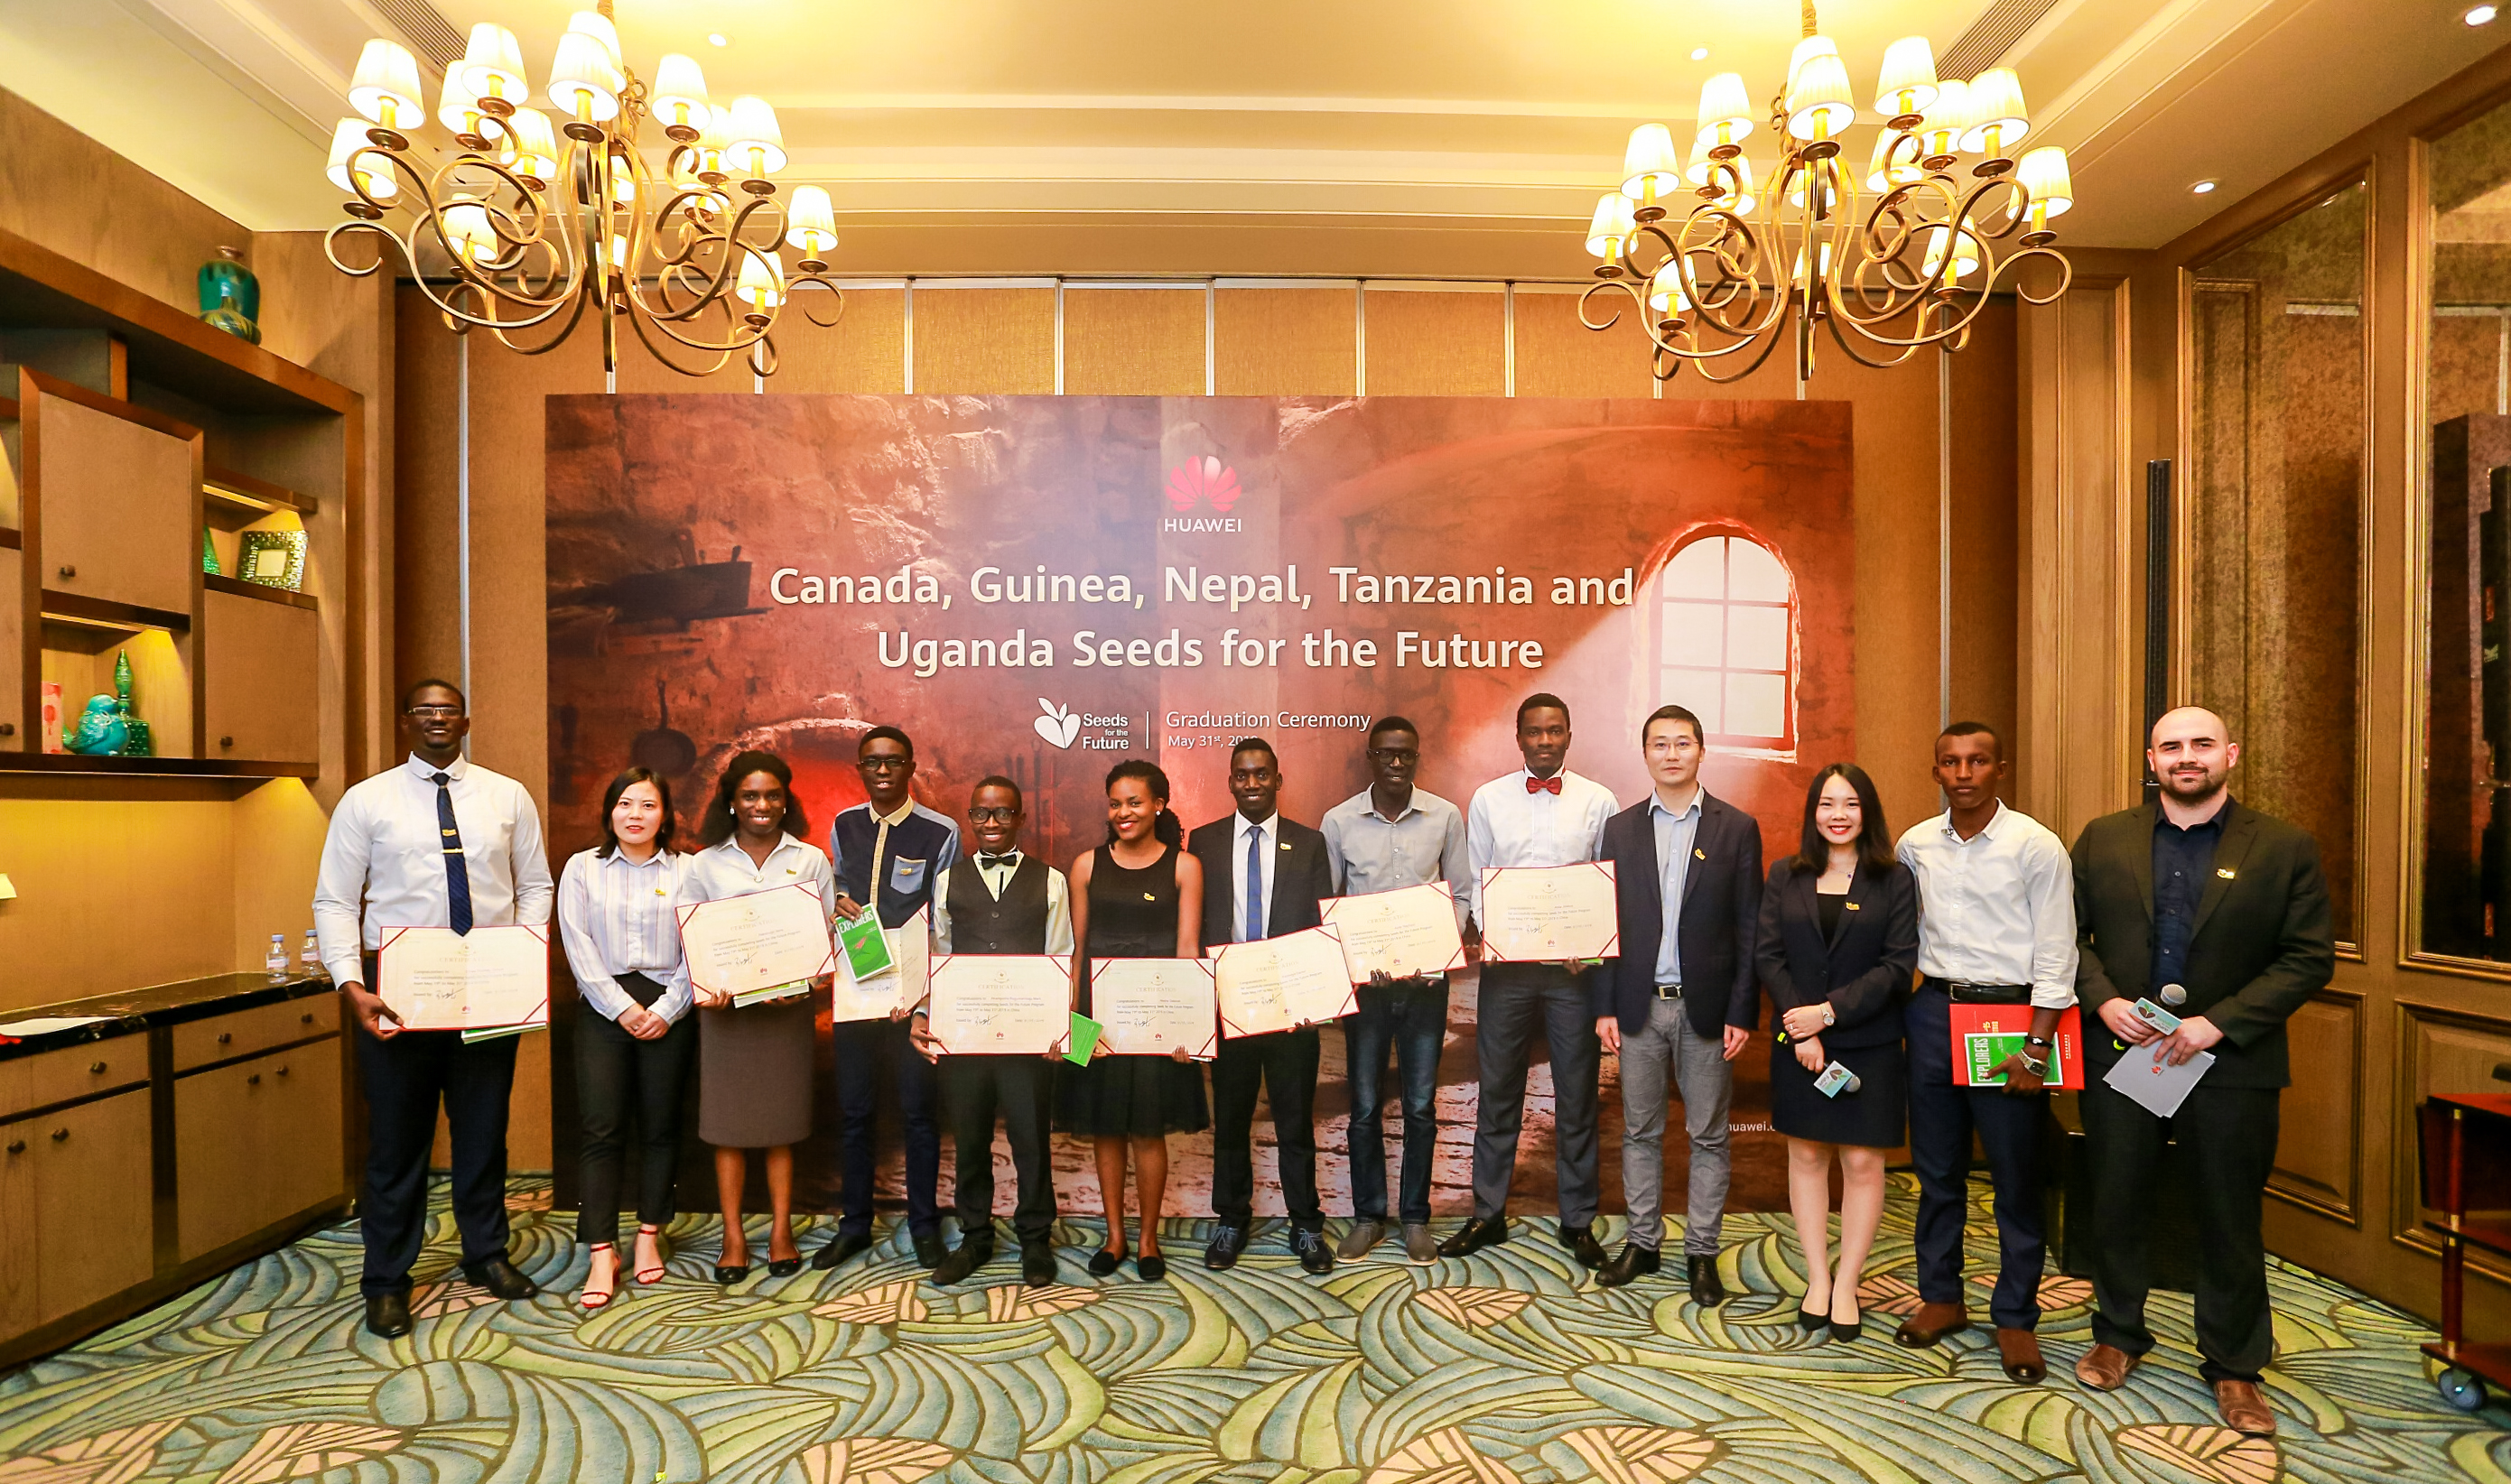 Huawei Uganda announces Seeds for the Future Program 2020 edition despite Covid-19 Pandemic